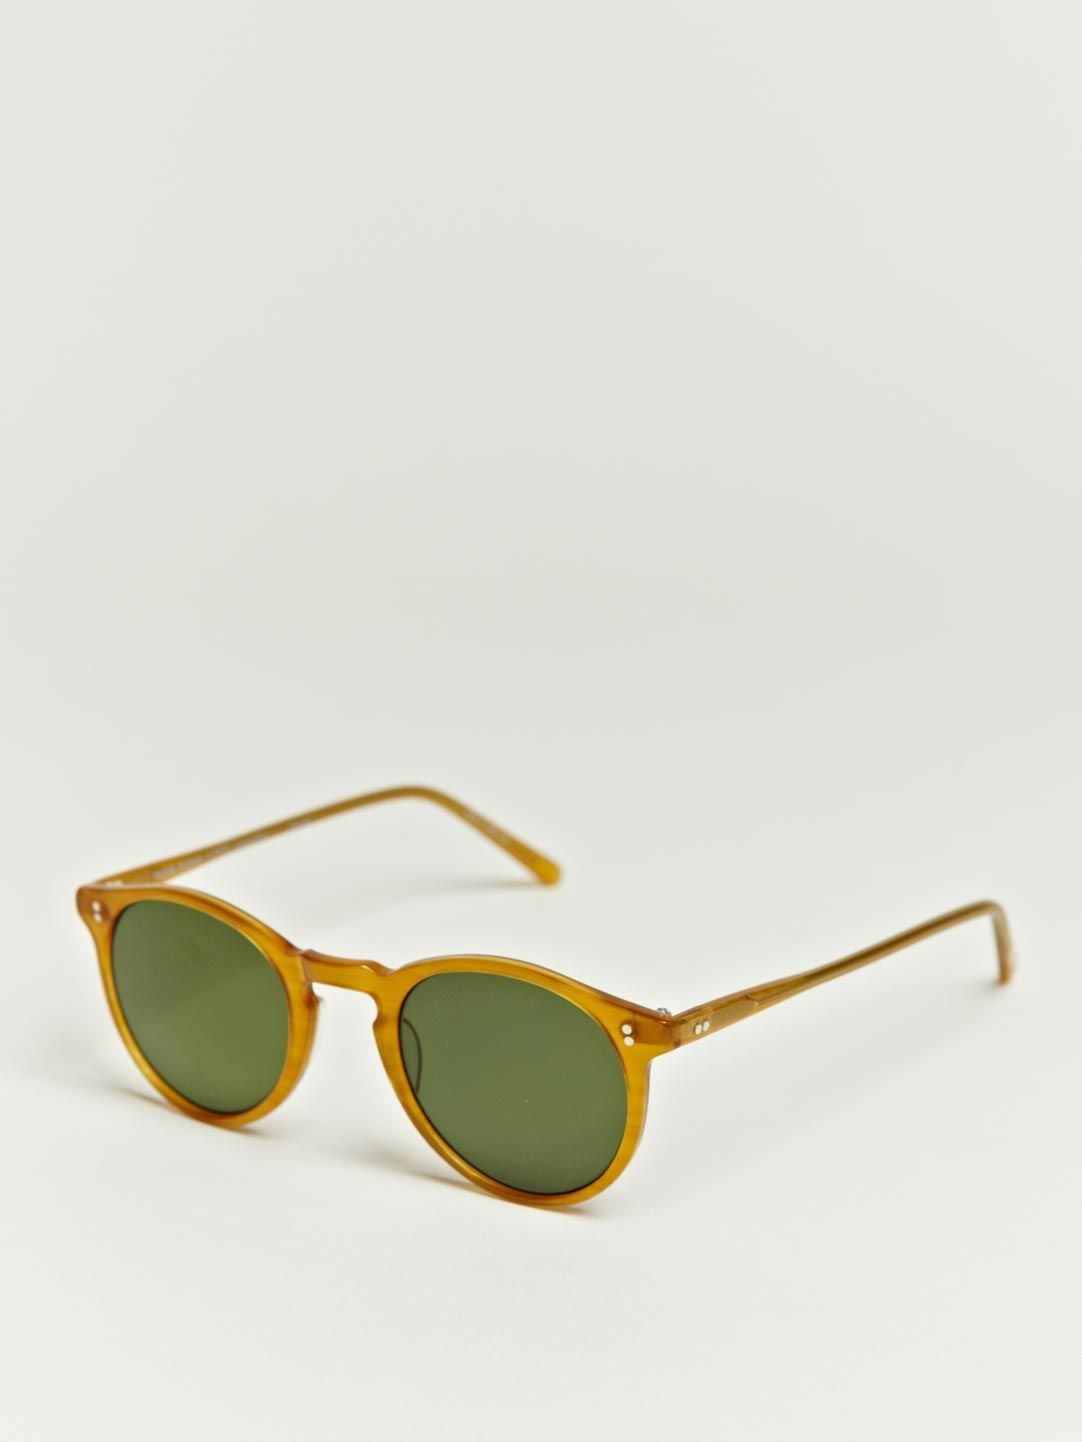 64803f2775 Oliver Peoples O Malley